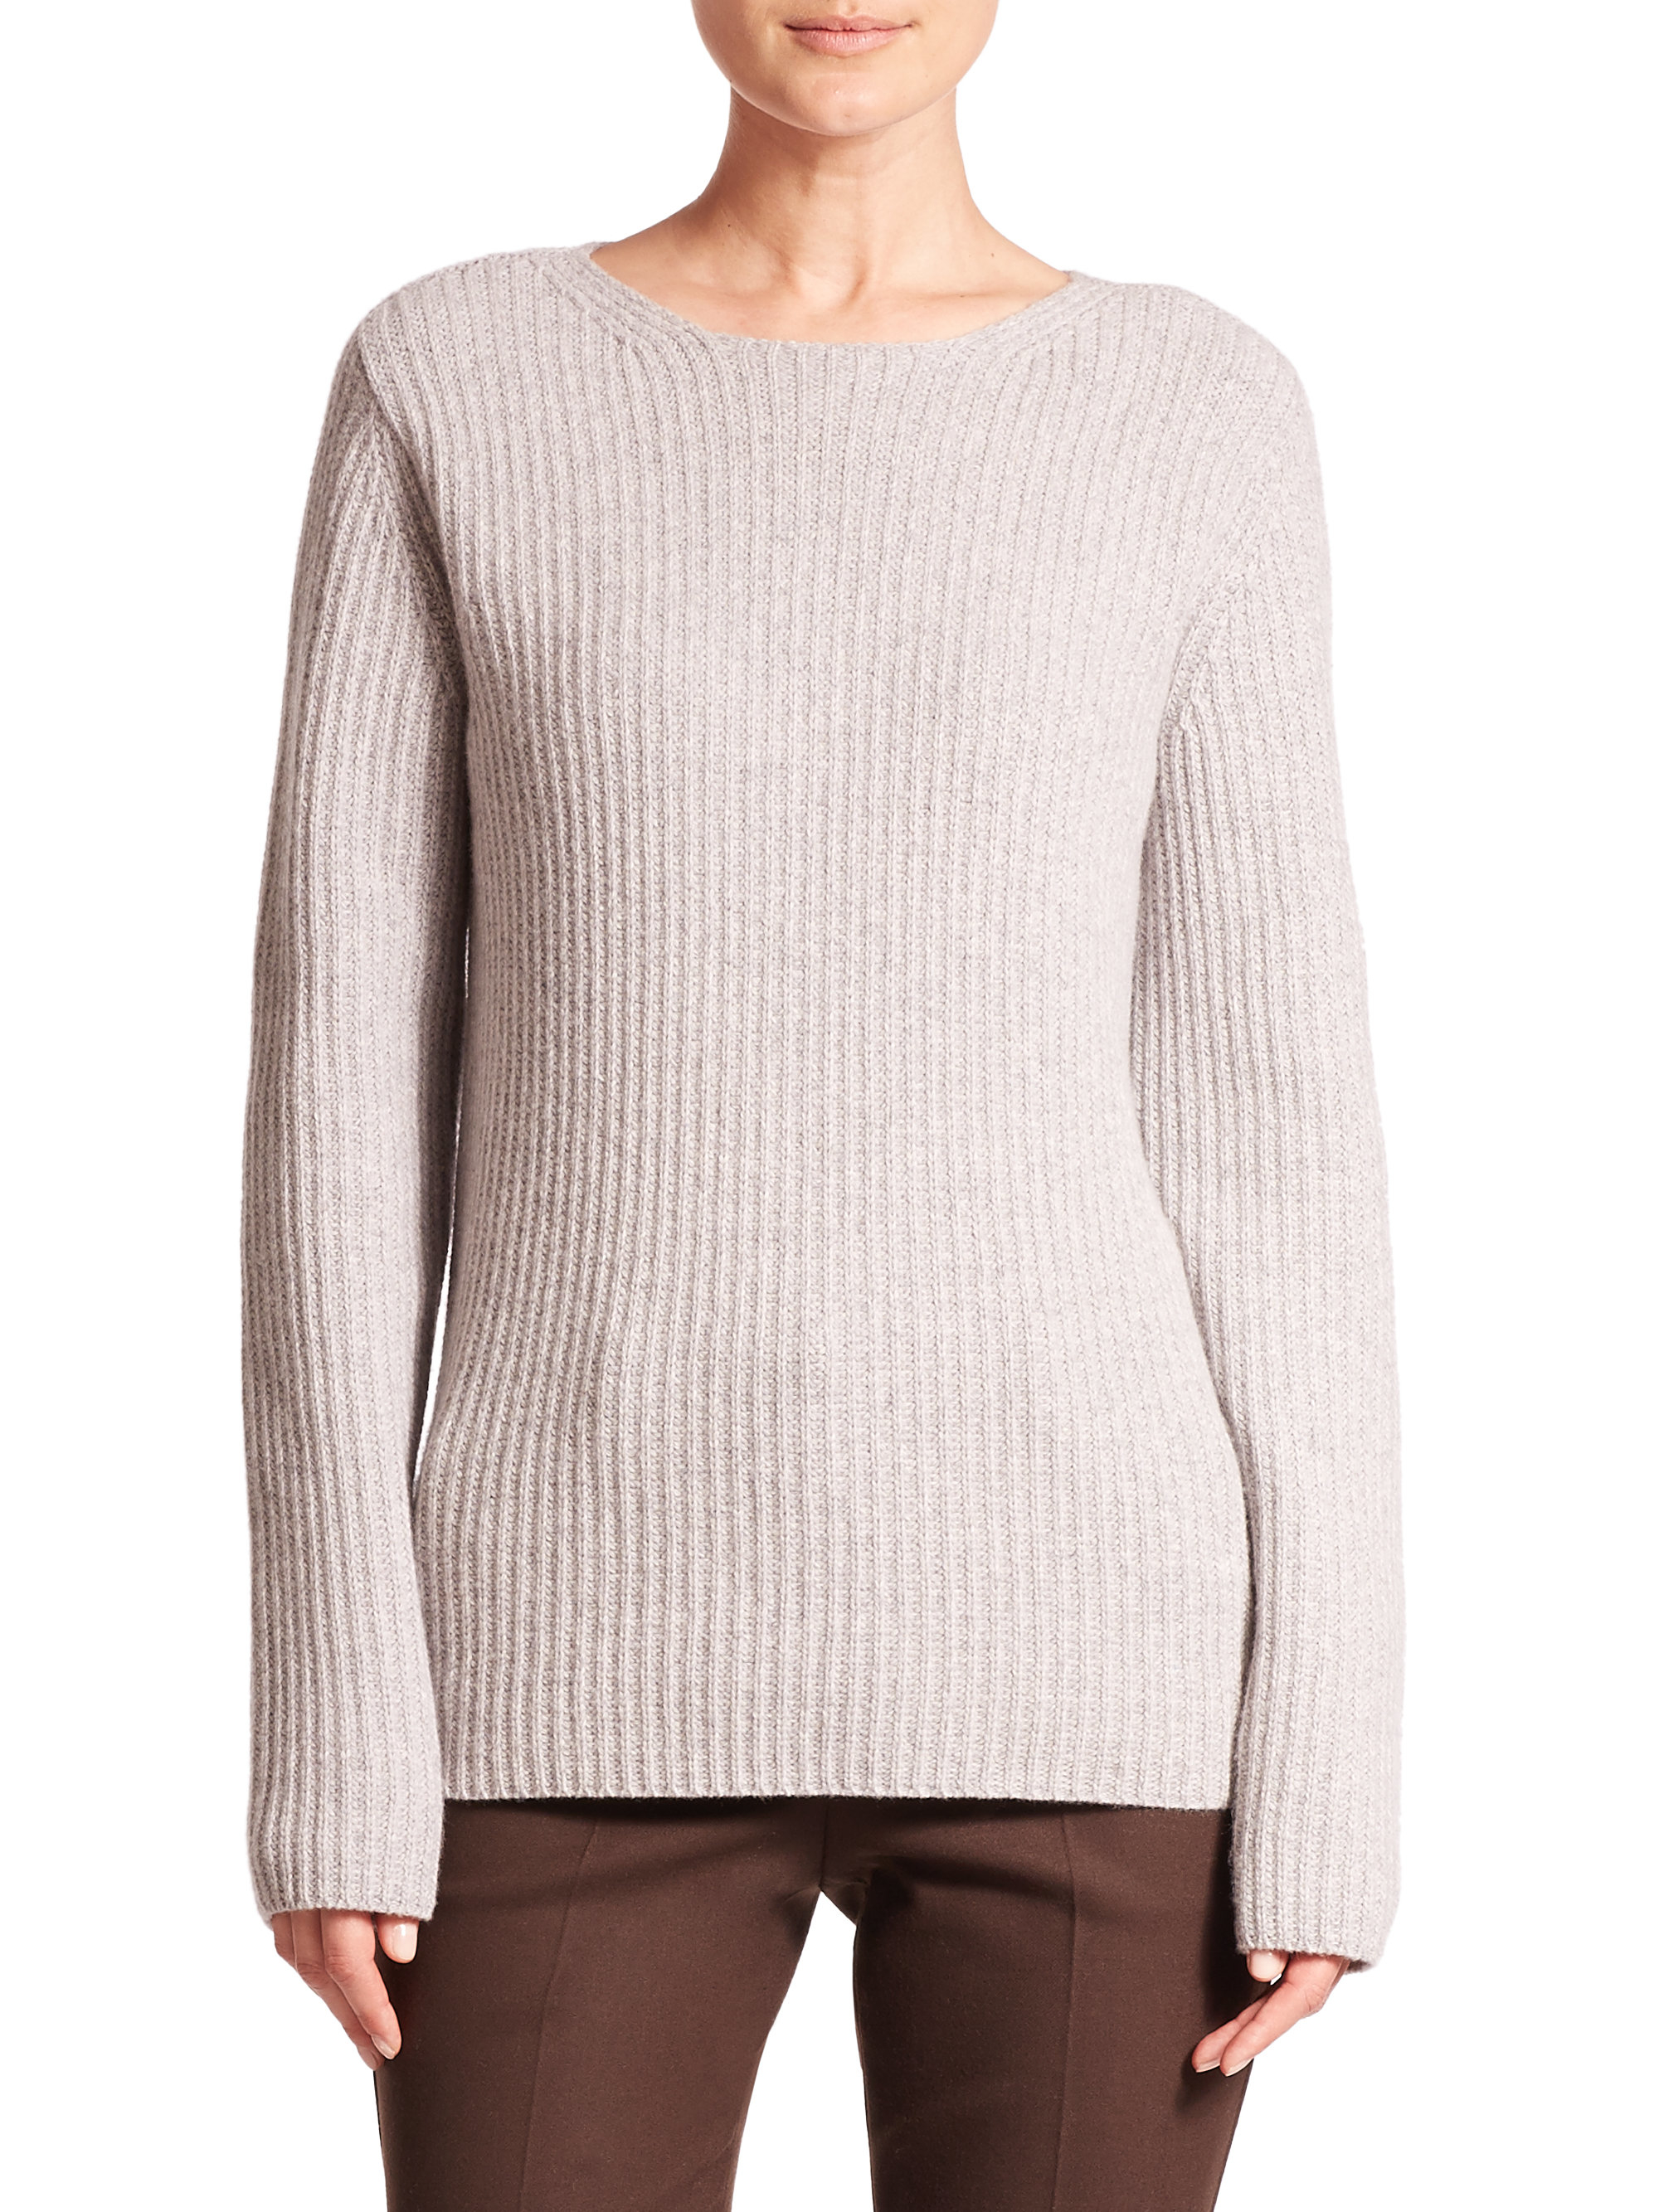 Theory Arminay Ribbed Wool & Cashmere Crewneck Sweater in Gray | Lyst